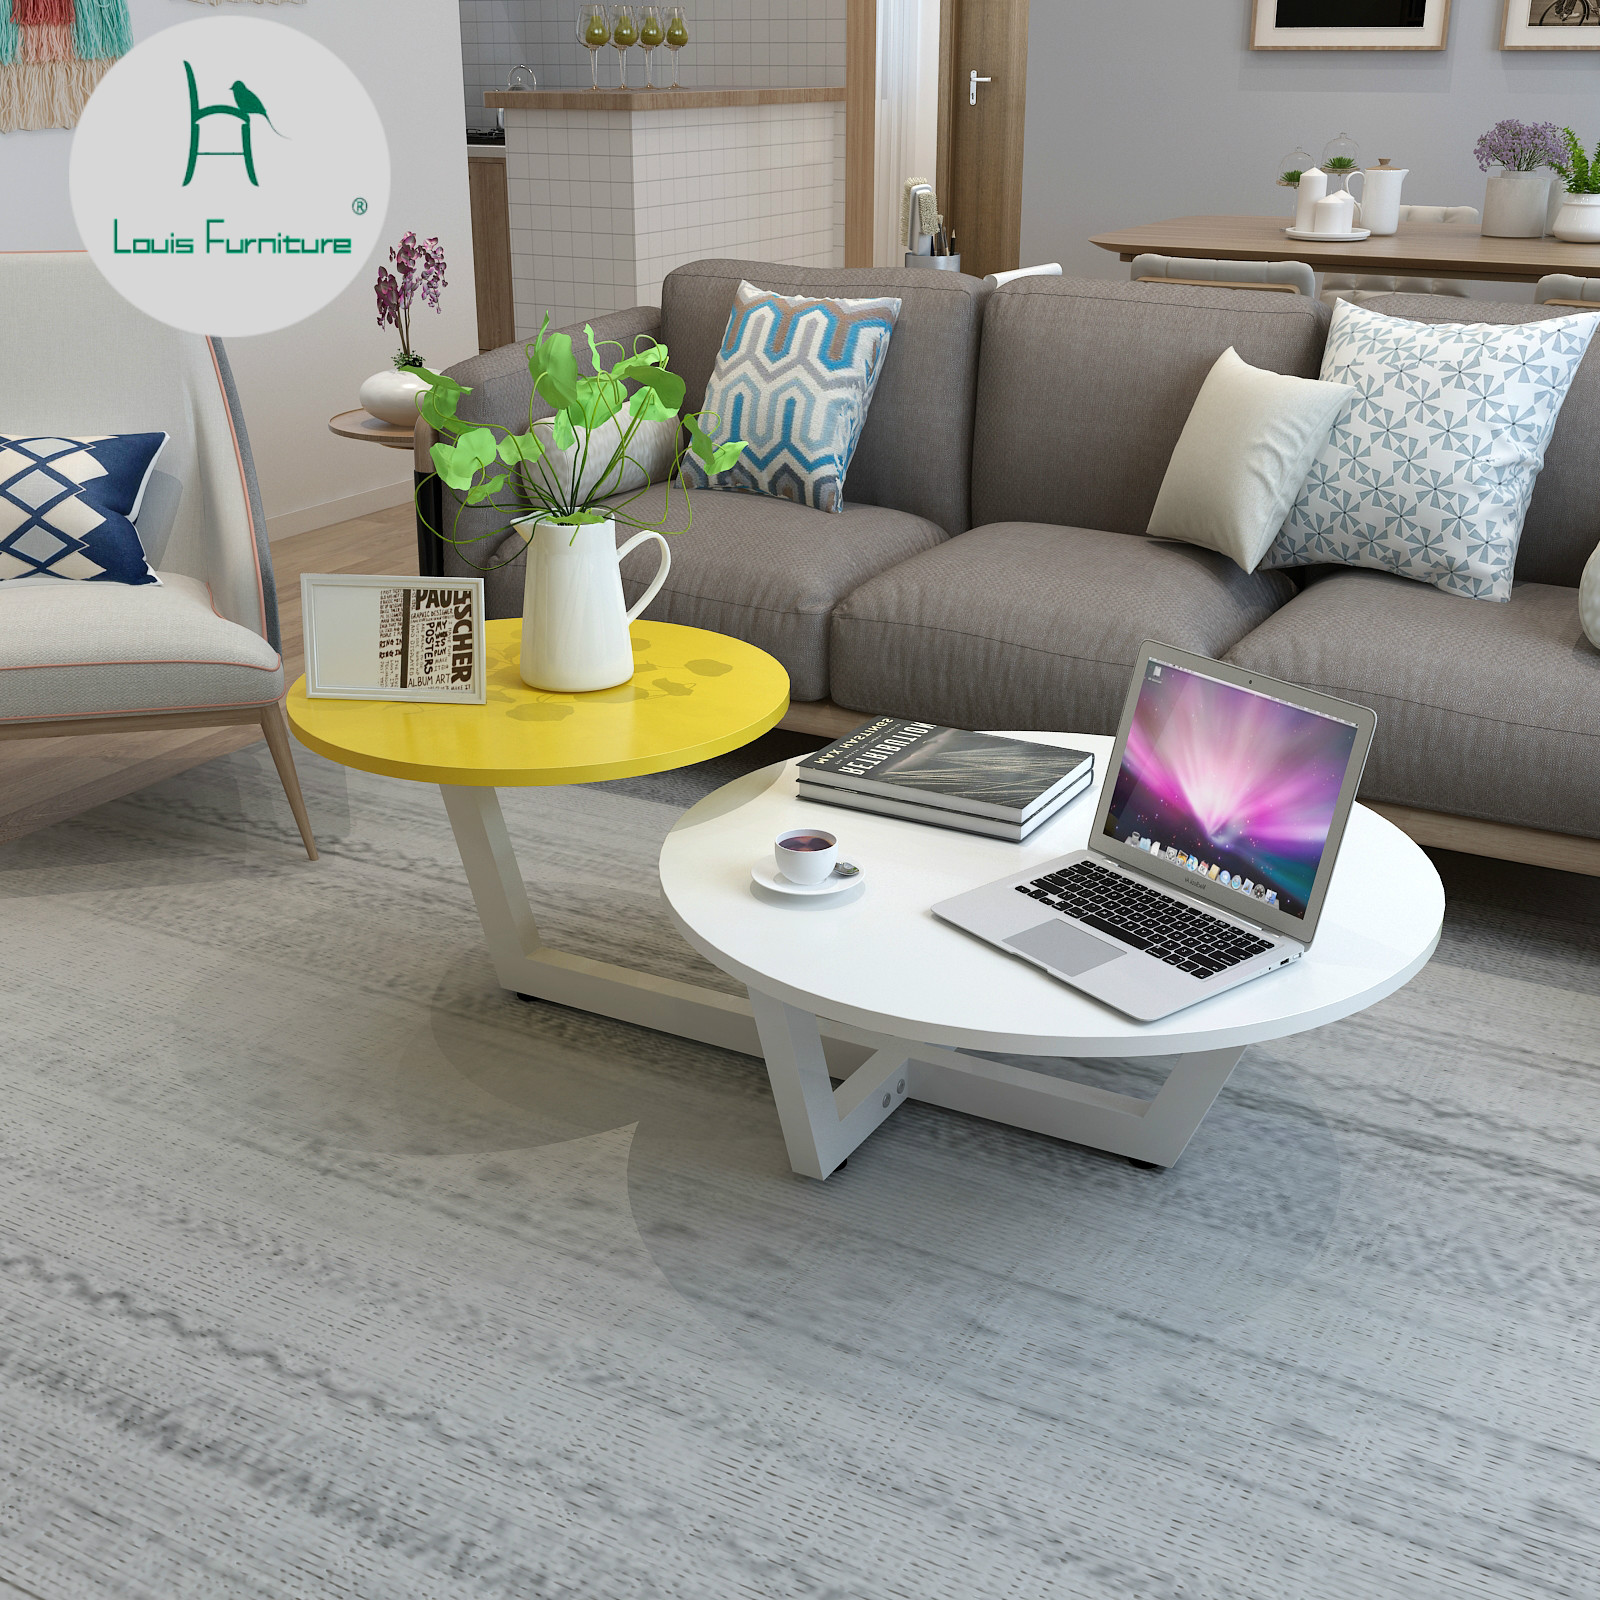 Us 59 9 Louis Fashion Coffee Tables Modern Minimalist Living Room Small Apartment Mini European Style In Coffee Tables From Furniture On Aliexpress